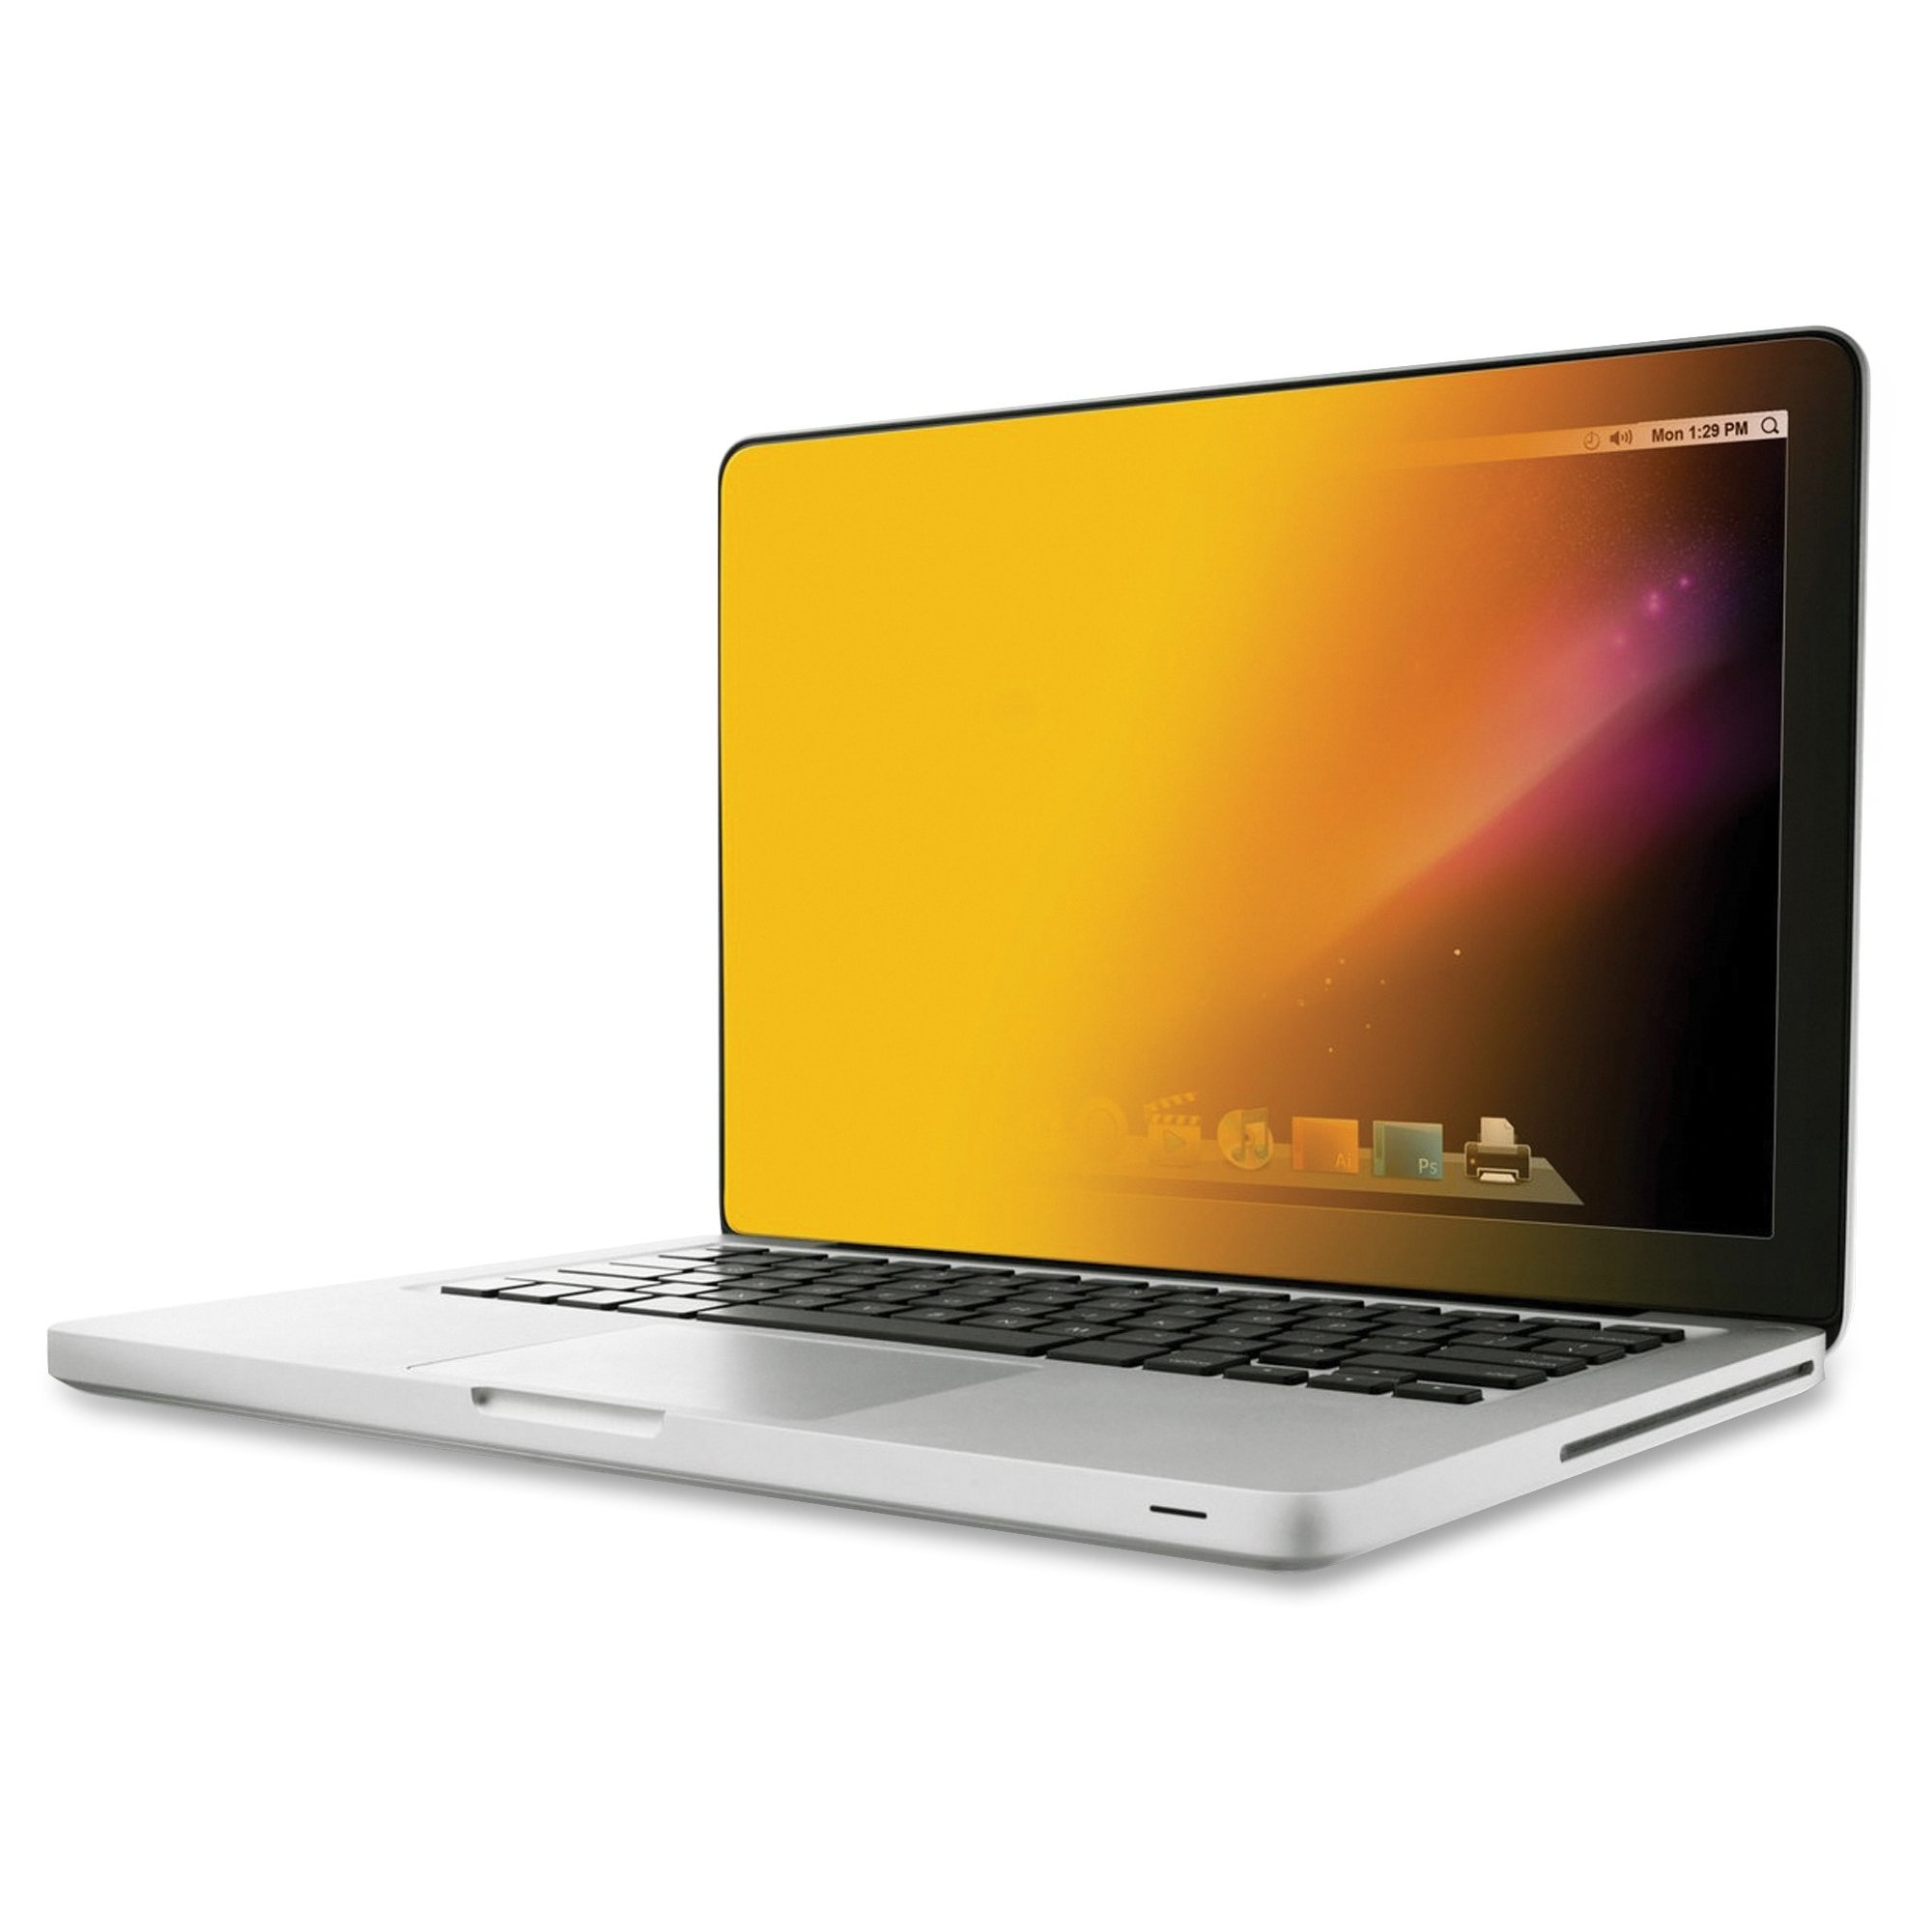 3M GPFMR15 GOLD Privacy Filters - Notebook privacy filter - 15.4 inch - gold - for Apple MacBook Pro with Retina display (15.4 in)